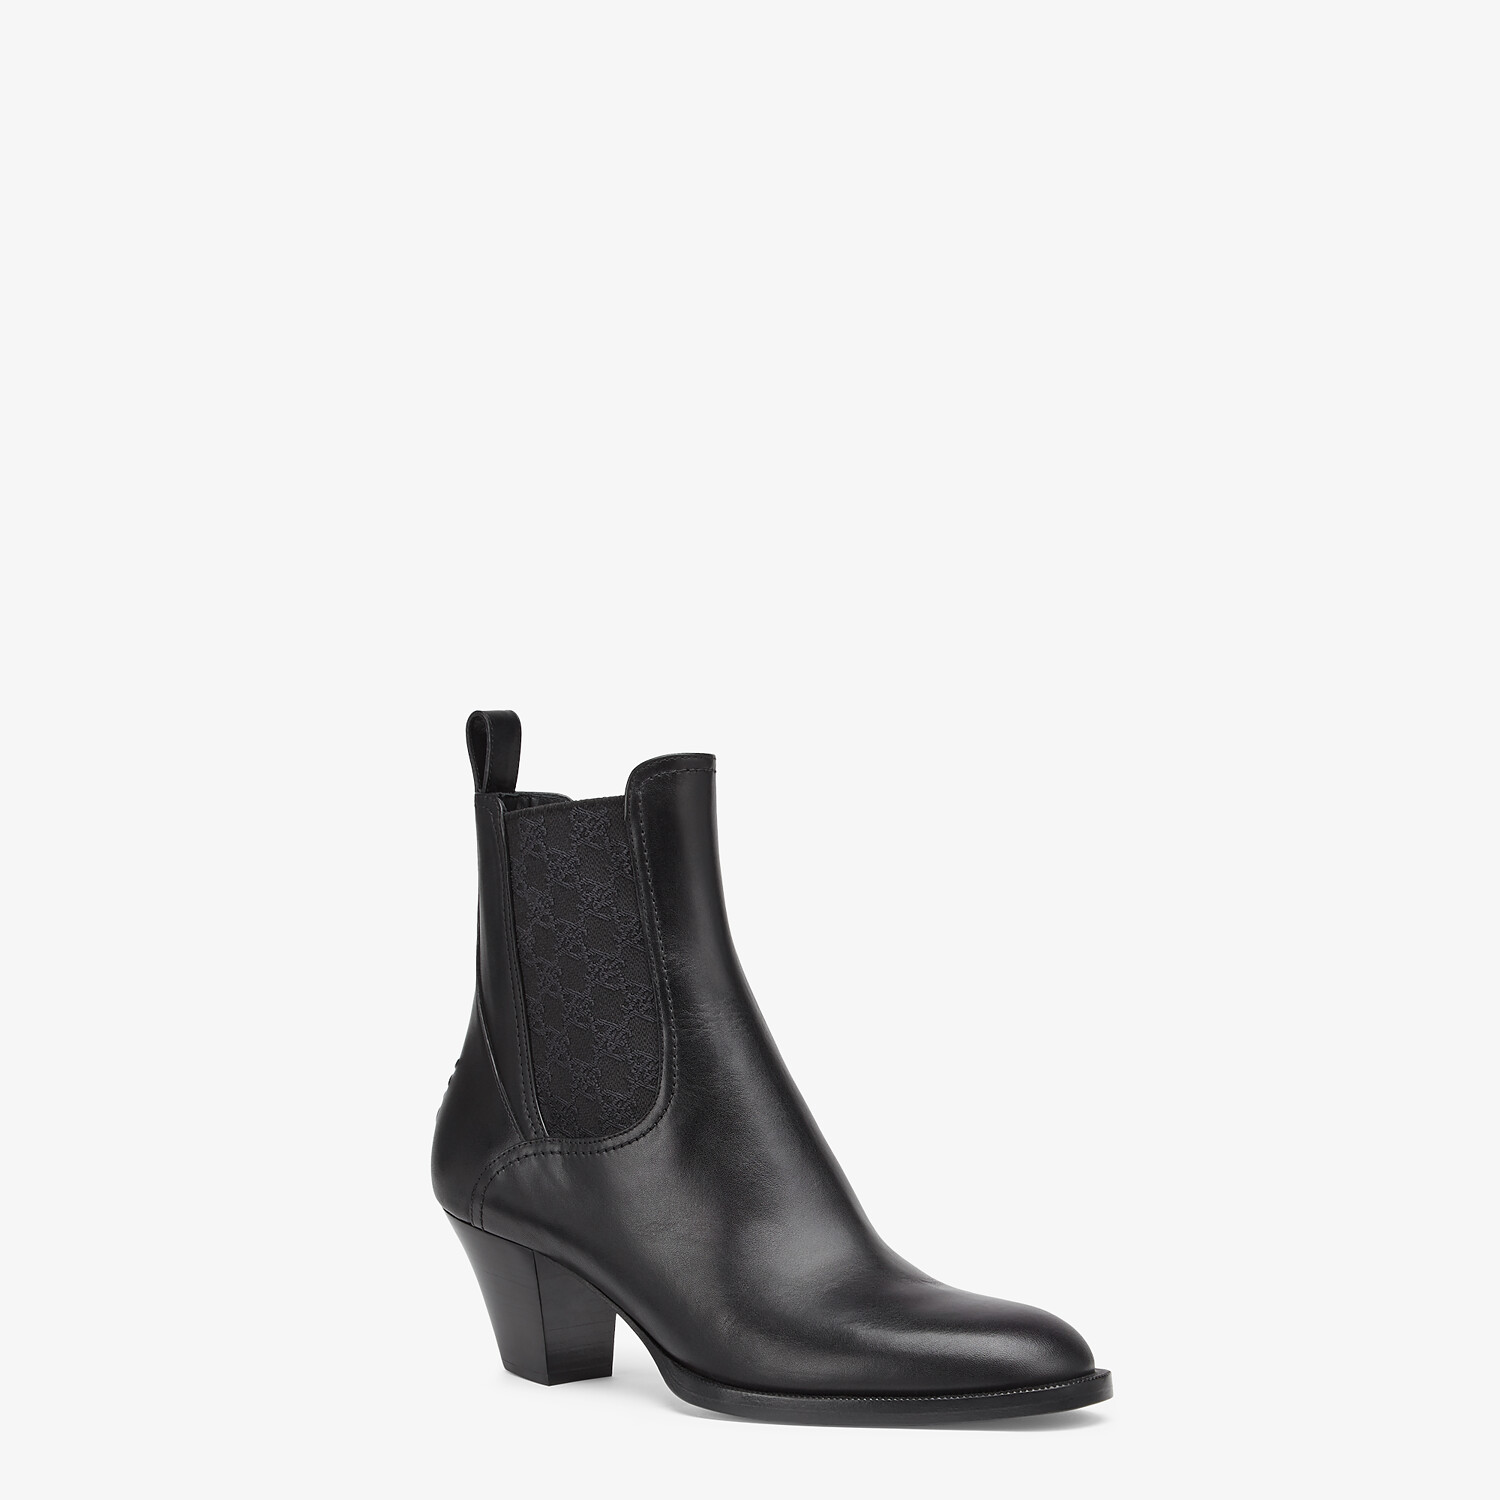 FENDI KARLIGRAPHY - Black leather boots with medium heel - view 2 detail